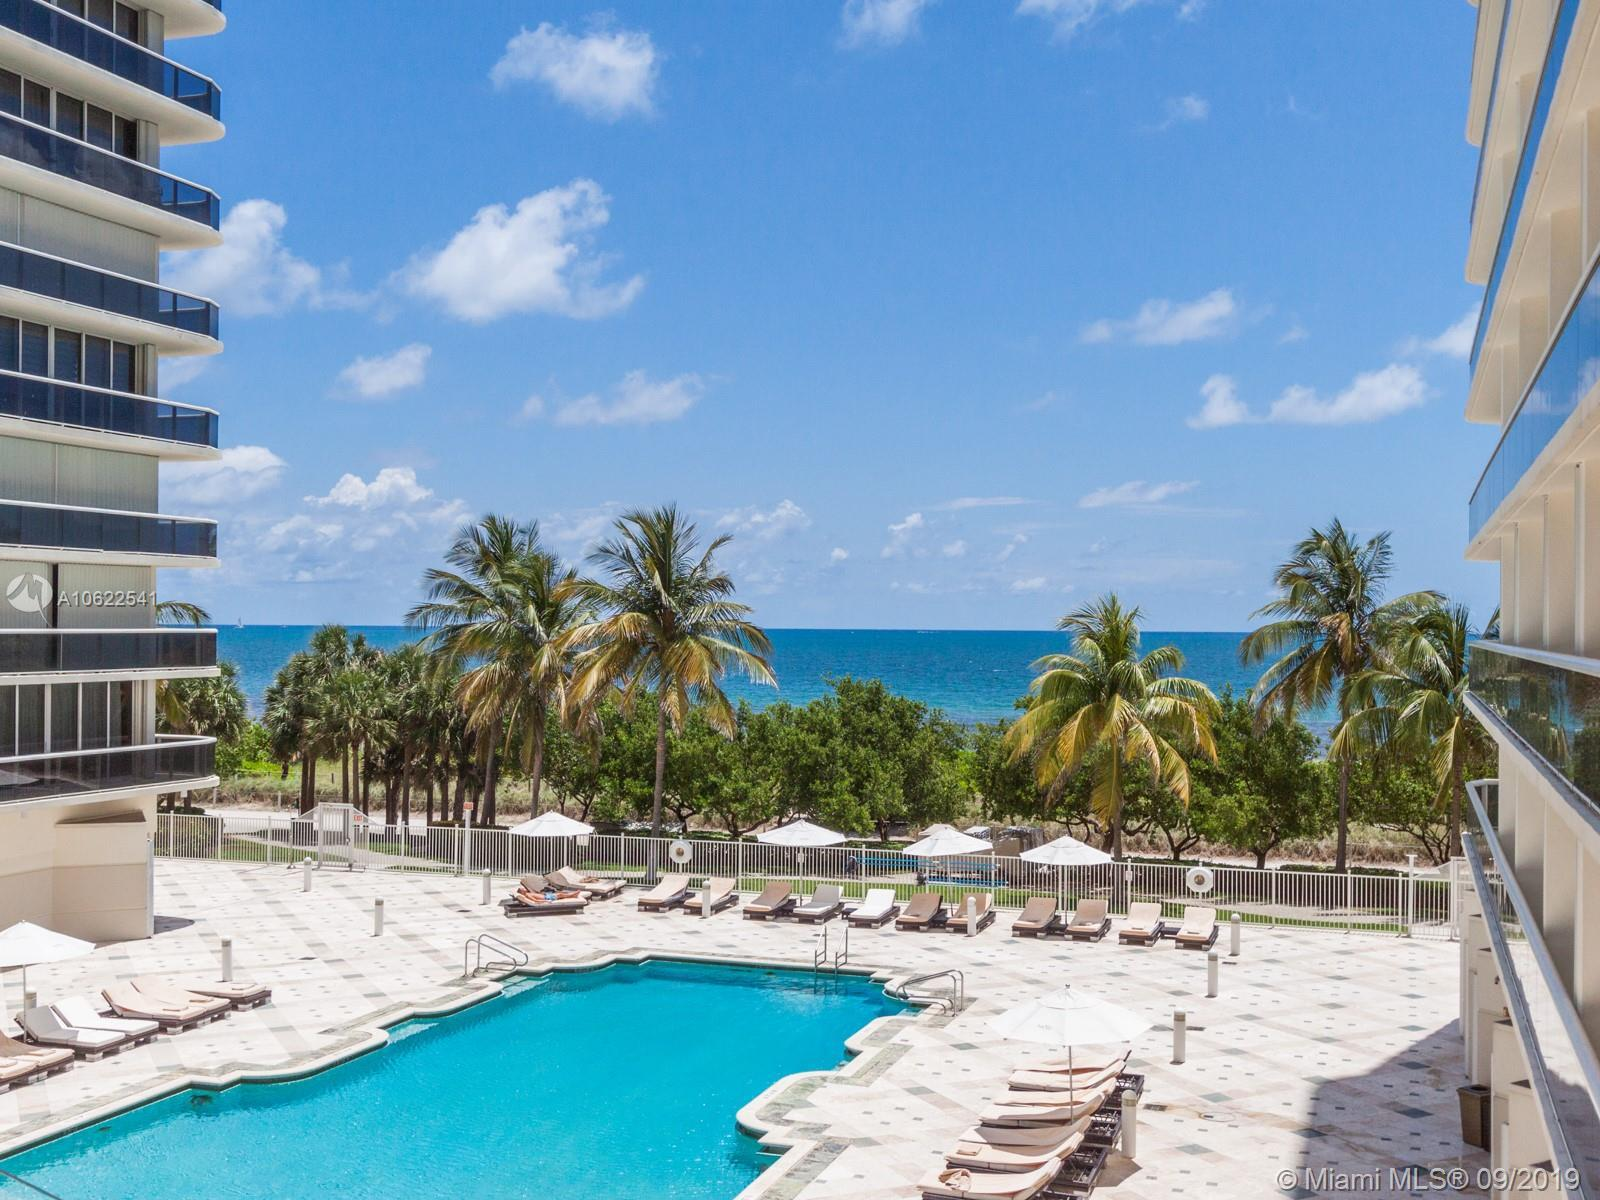 Best Deal in the Building Ocean Front Unit - Price to sell. 10-foot ceilings, wide-open floor plan,